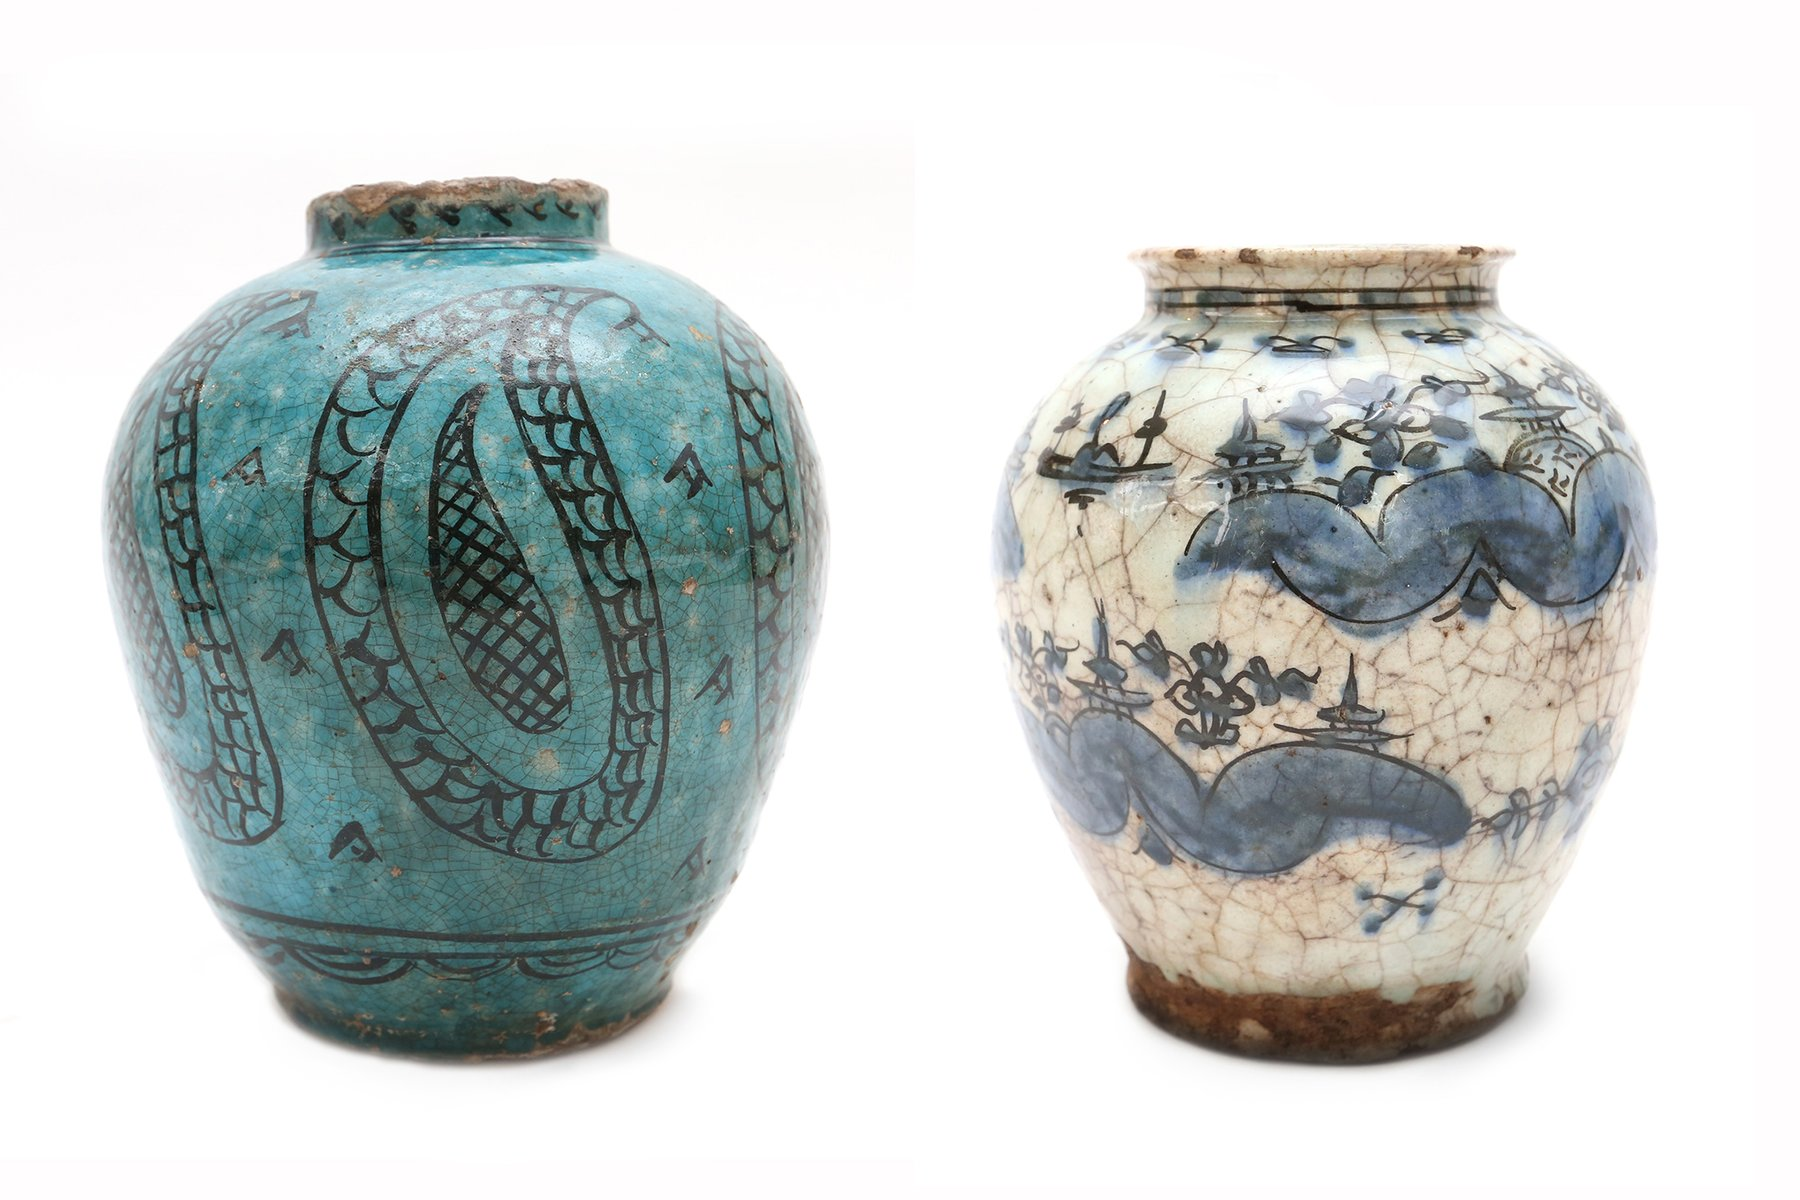 Antique persian style ceramic vases set of 2 for sale at pamono reviewsmspy